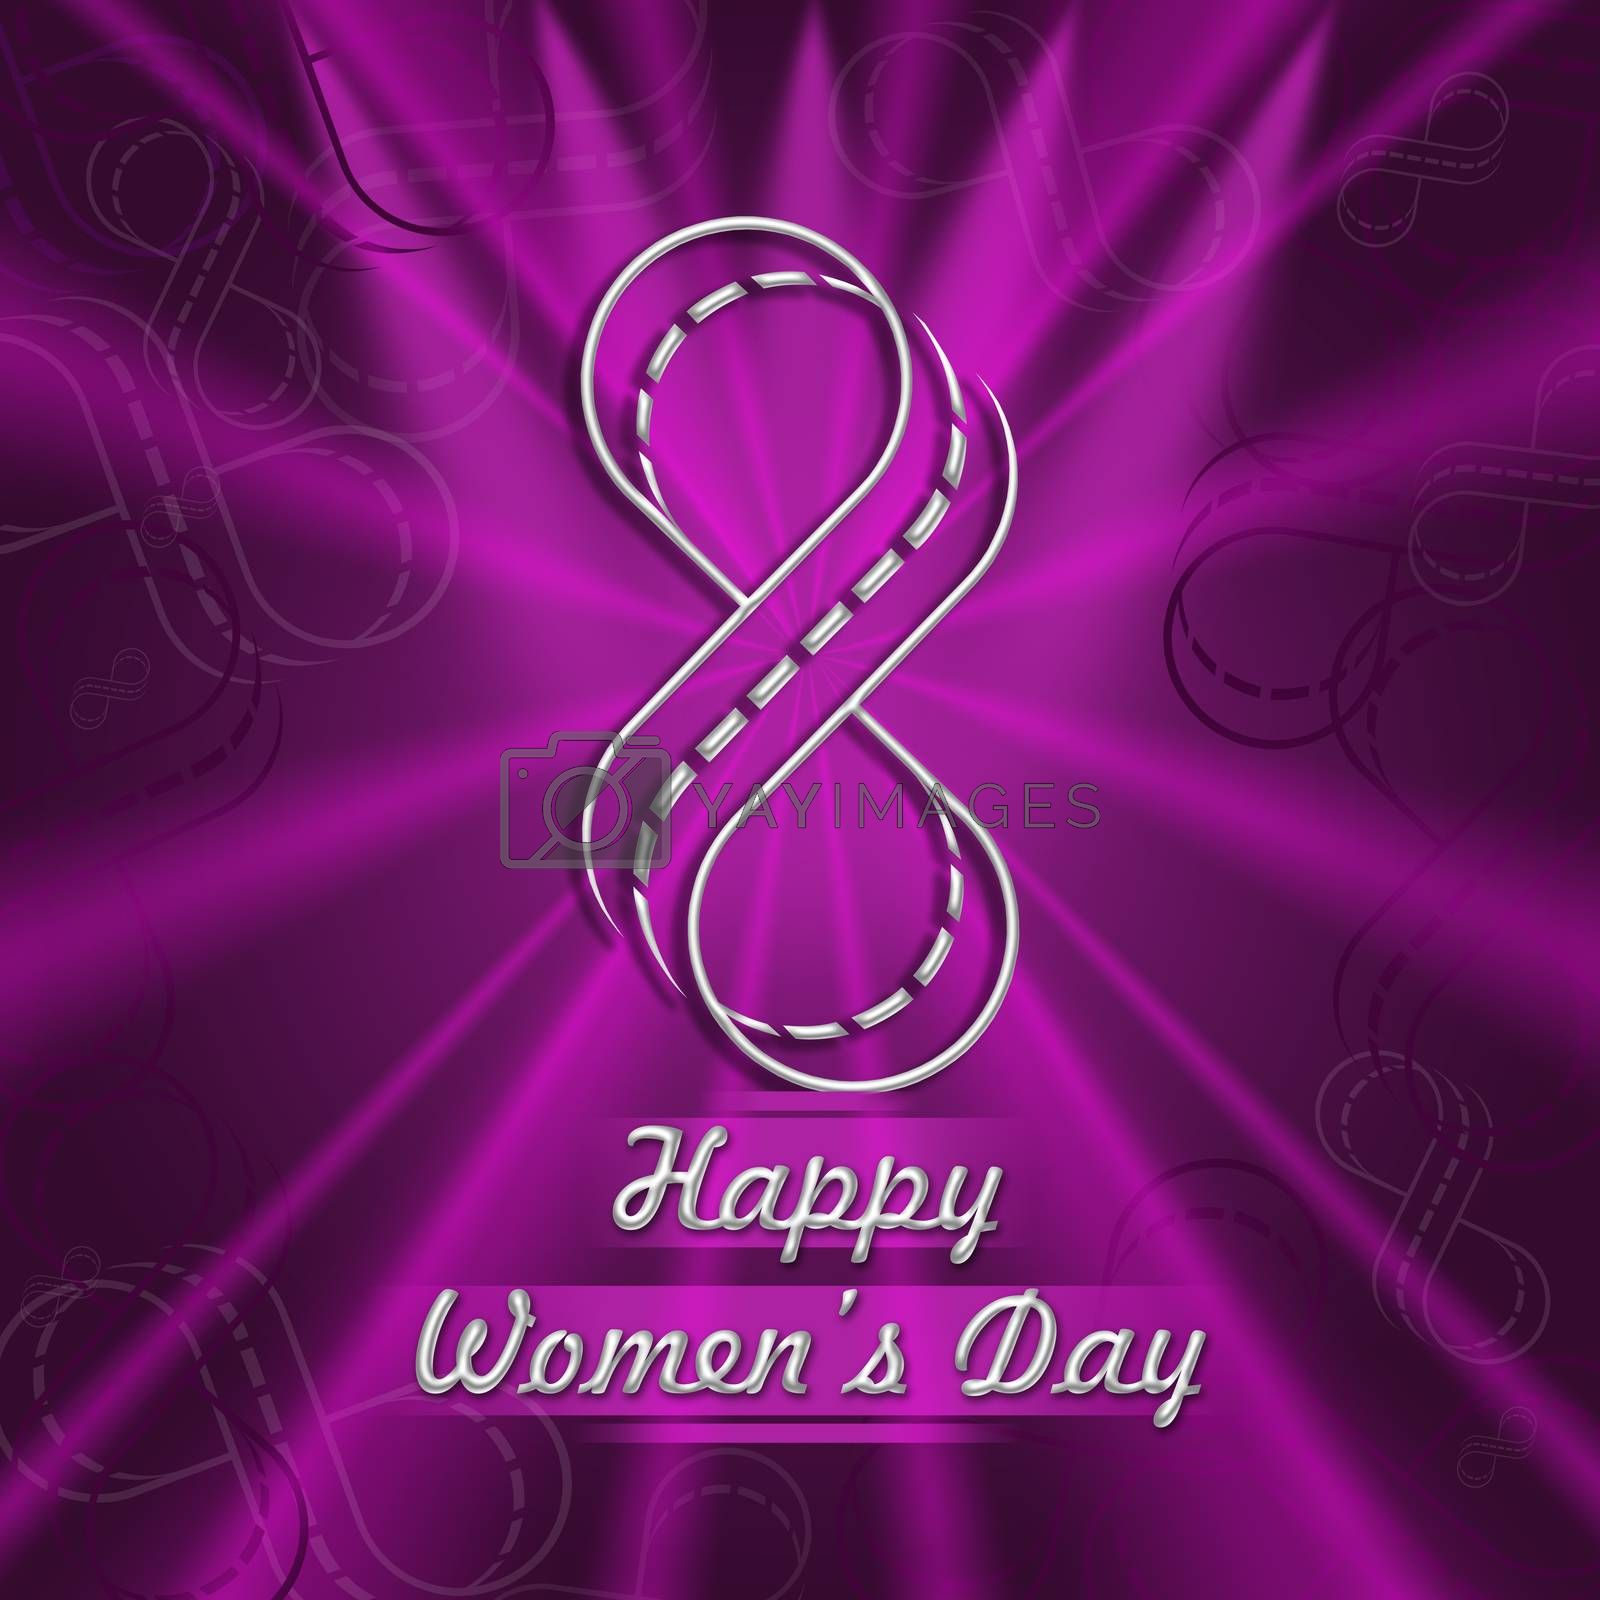 Royalty free image of International Women's Day by tharun15